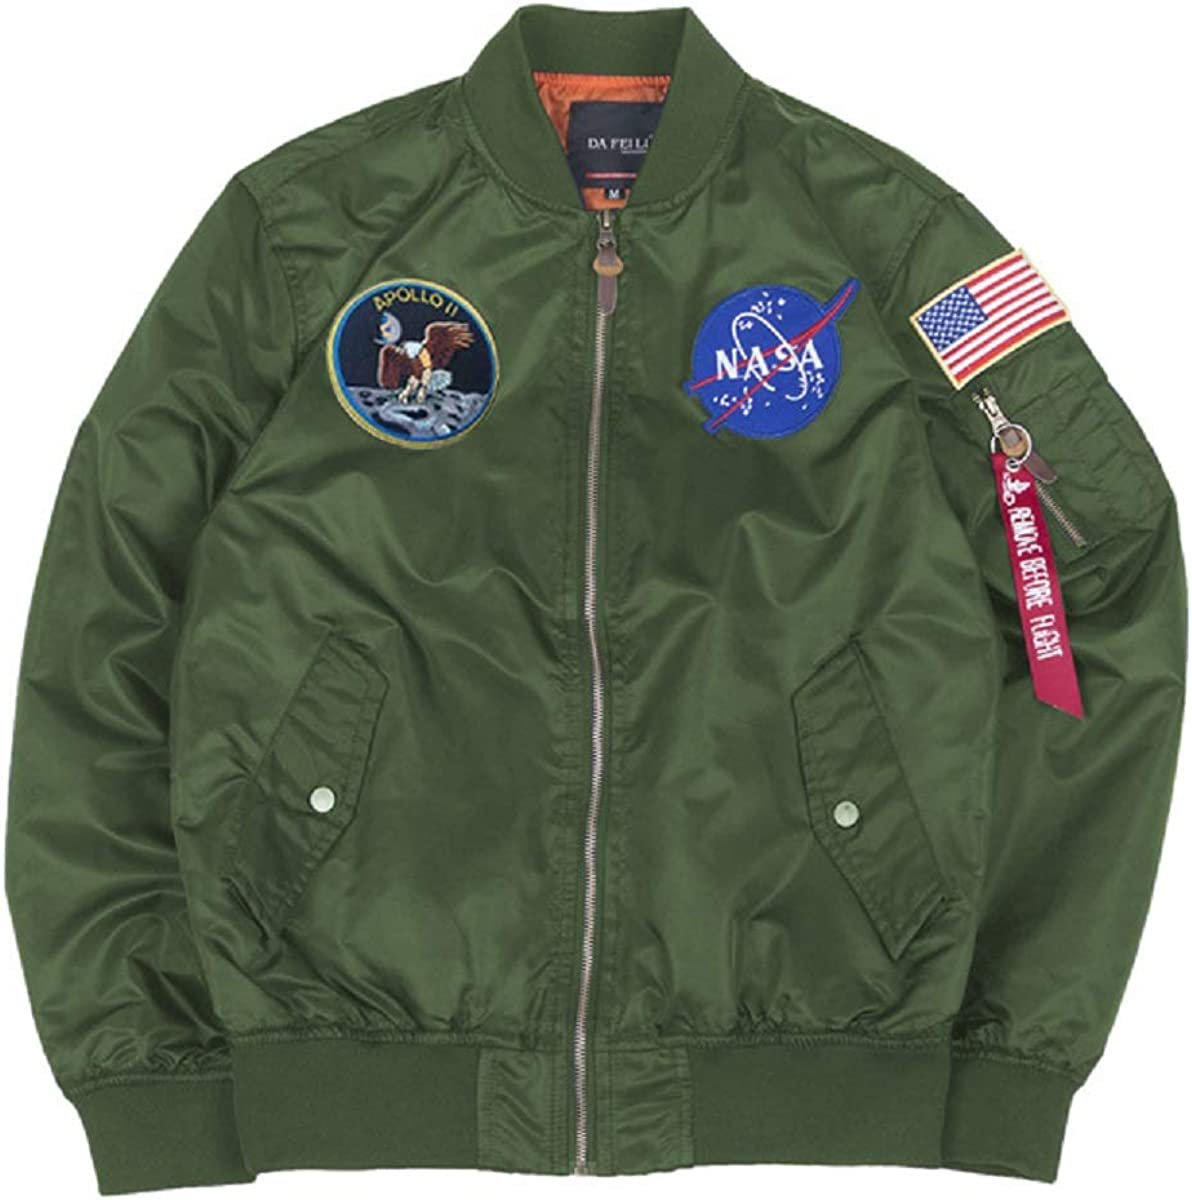 CORIRESHA Mens Apollo NASA Patches Manufacturer OFFicial shop Slim Max 53% OFF Jackets Fit Windb Bomber